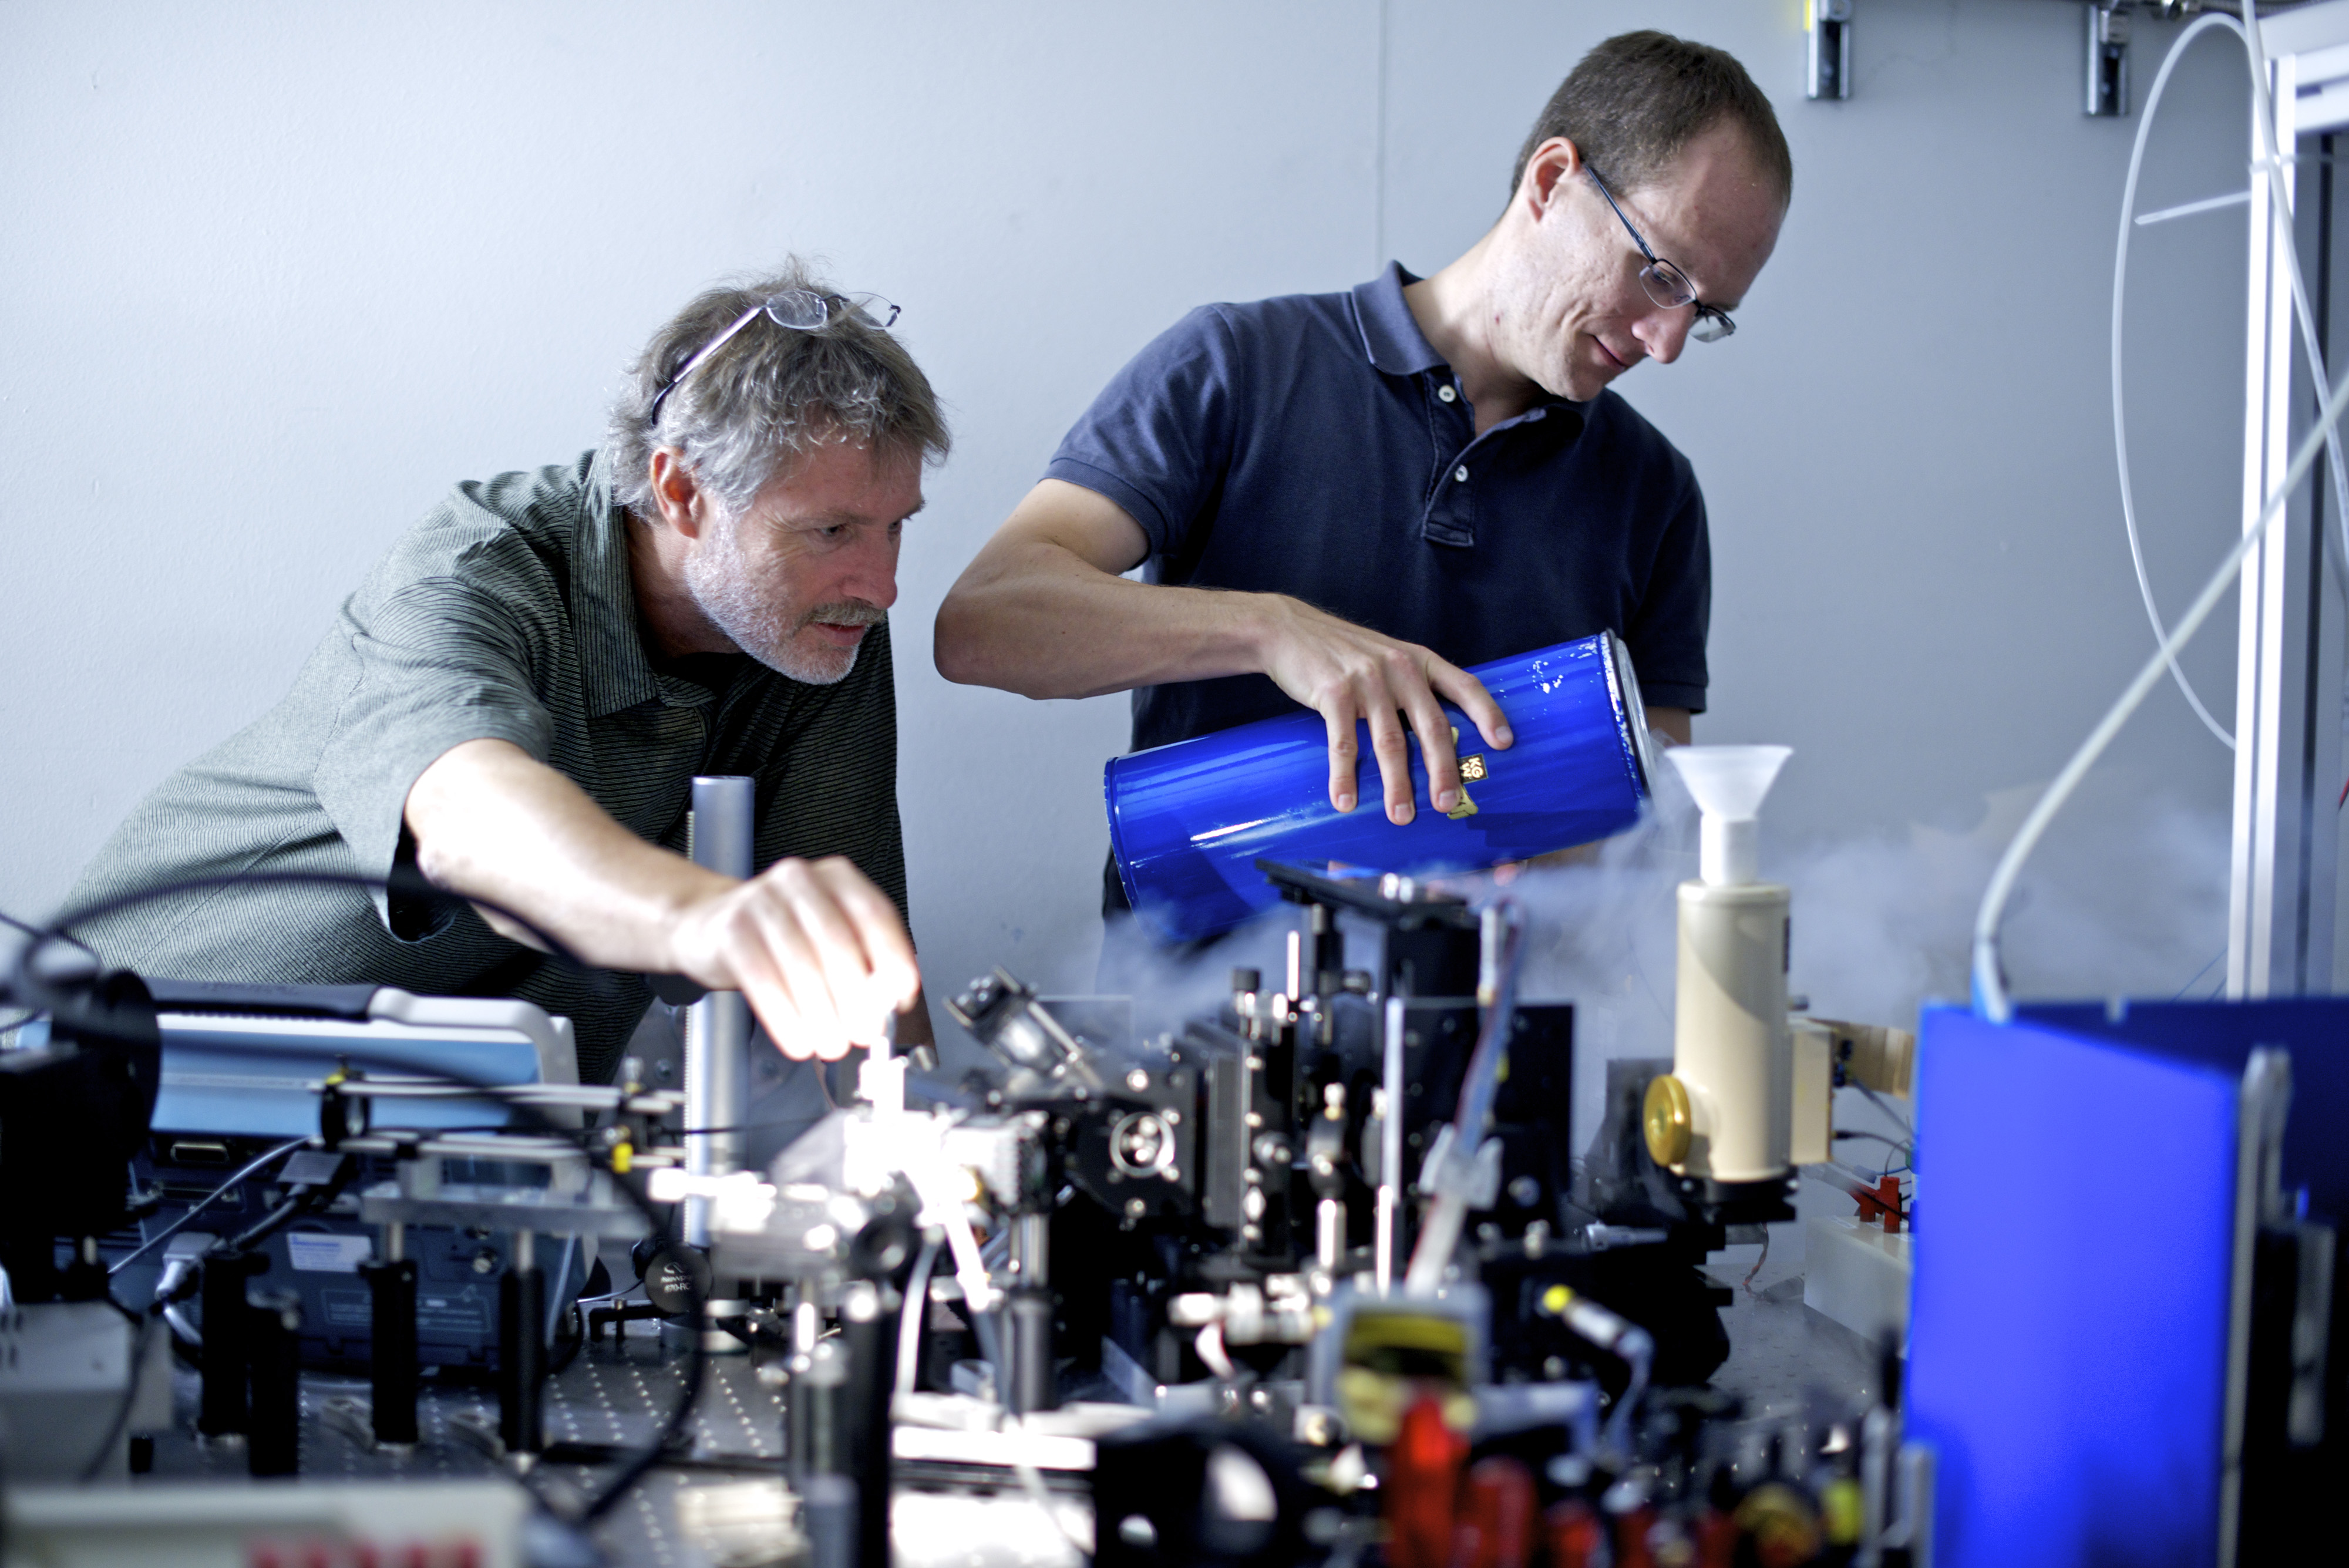 Hans Sigg and Peter Friedli preparing the experiment at the Infrared Beamline at the SLS for determining the laser properties of Germanium. (Photo: Frank Reiser, Paul Scherrer Institut)